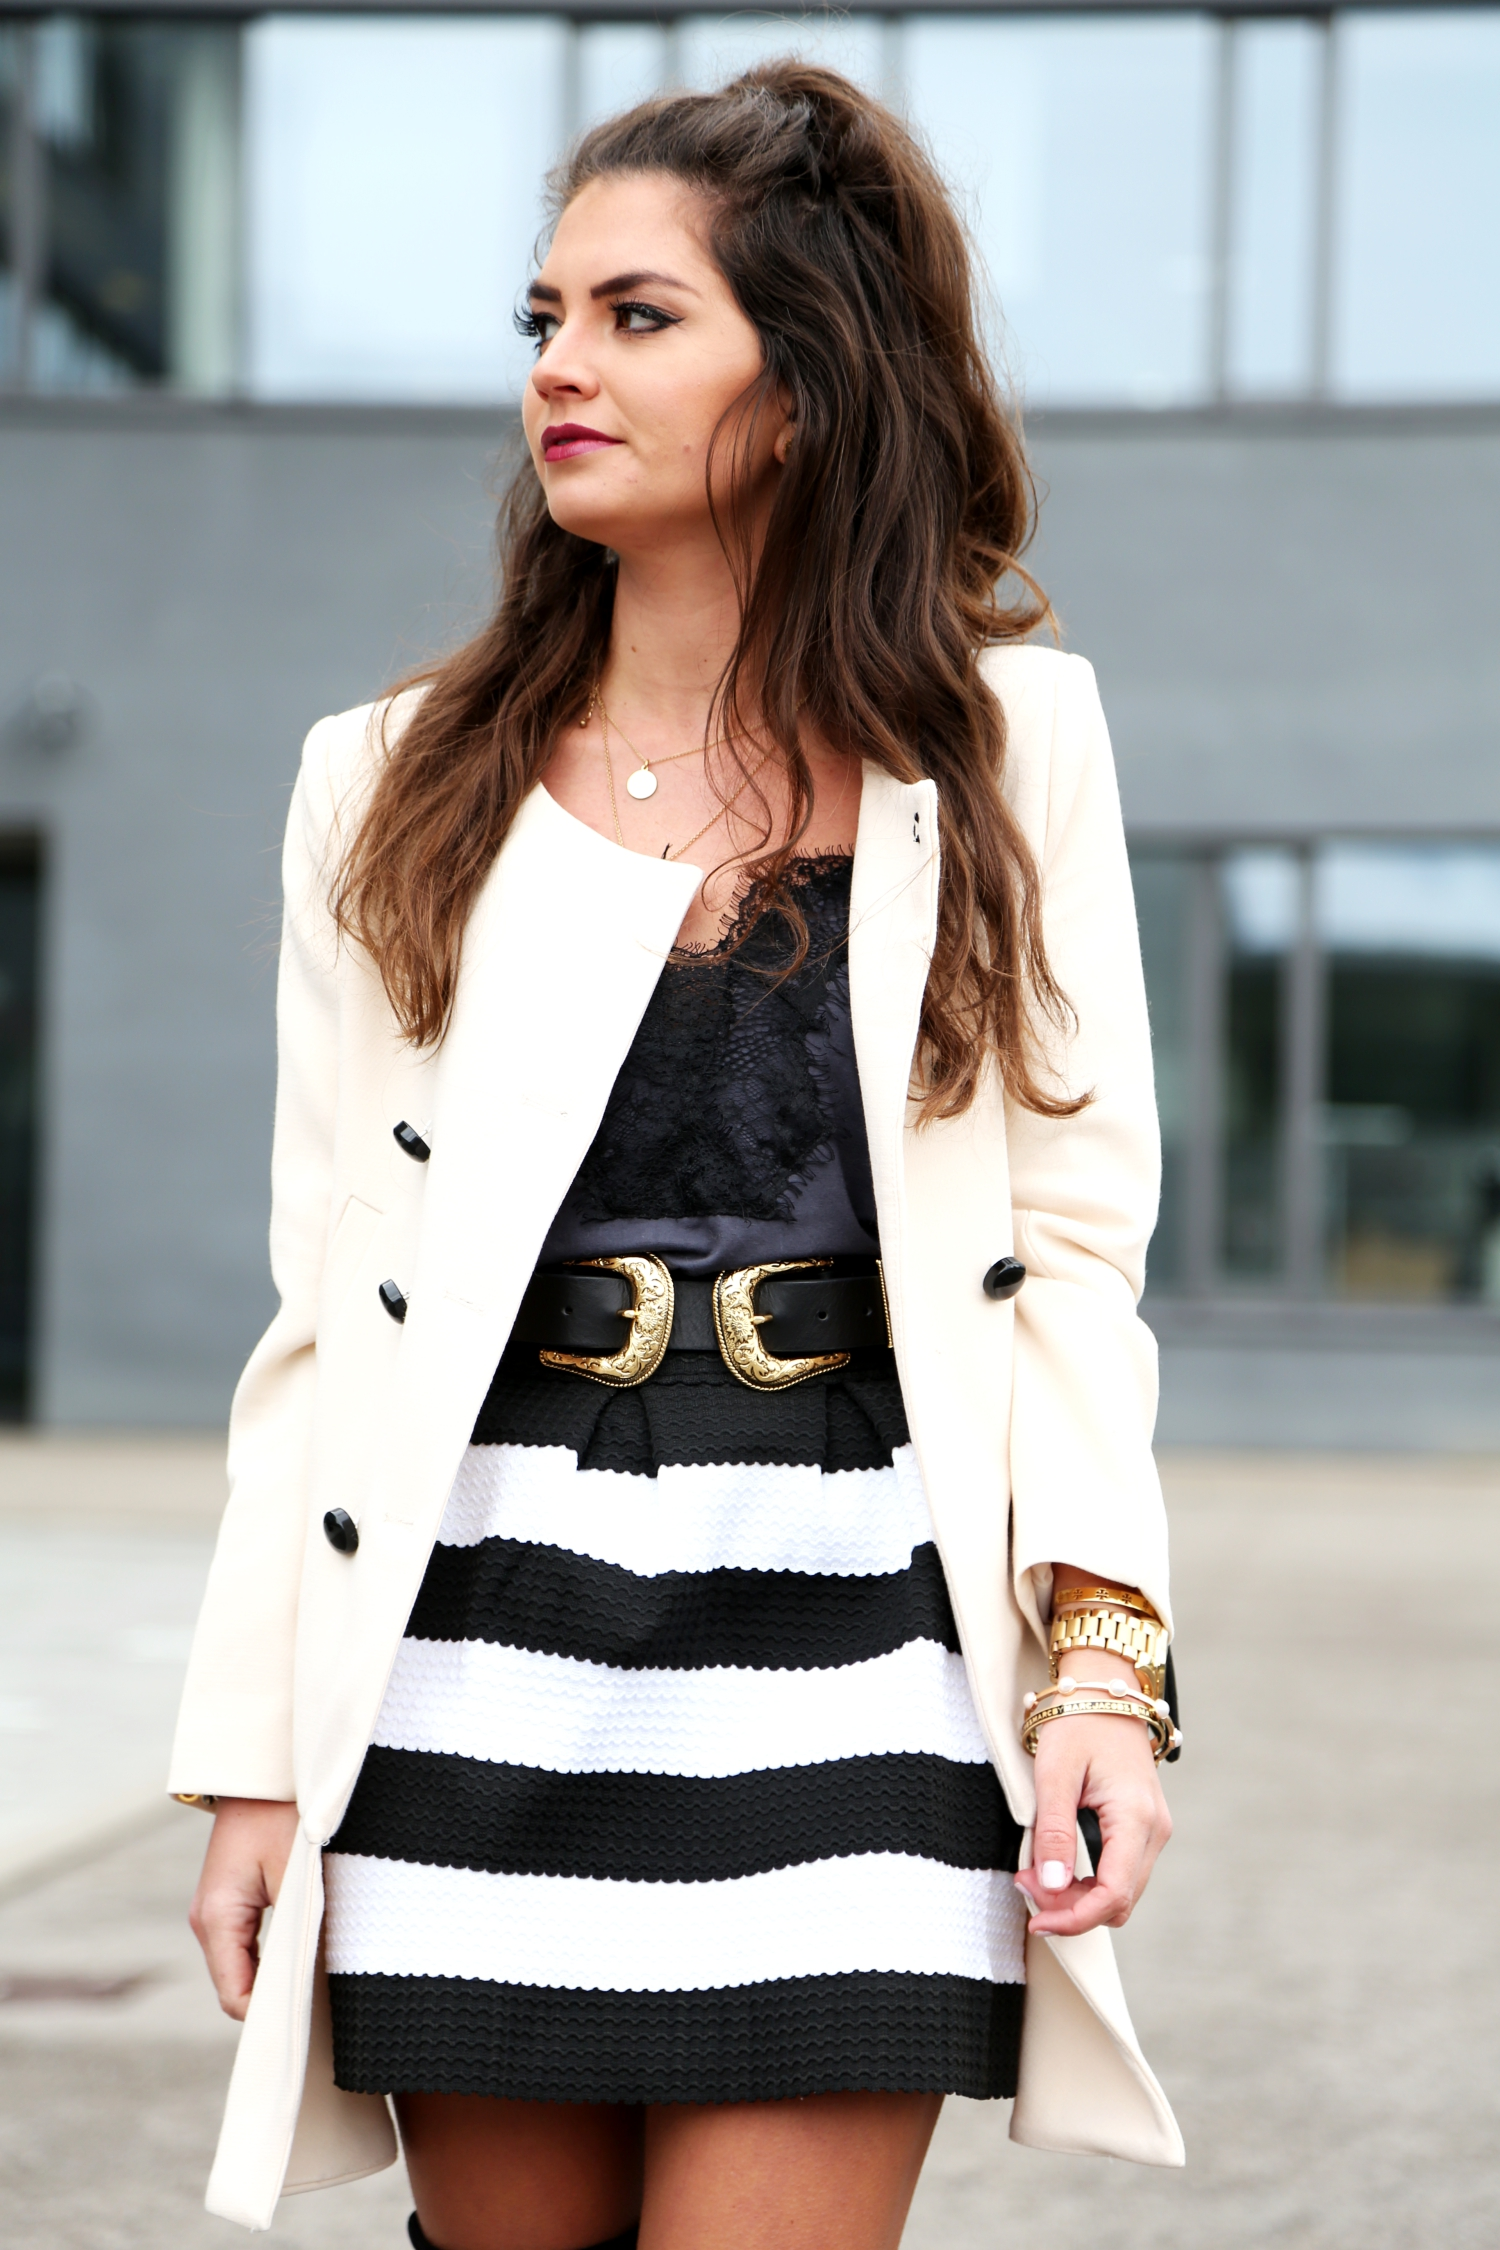 outfit-fashionblogger-stripes-lace-shirt-chanel-bag